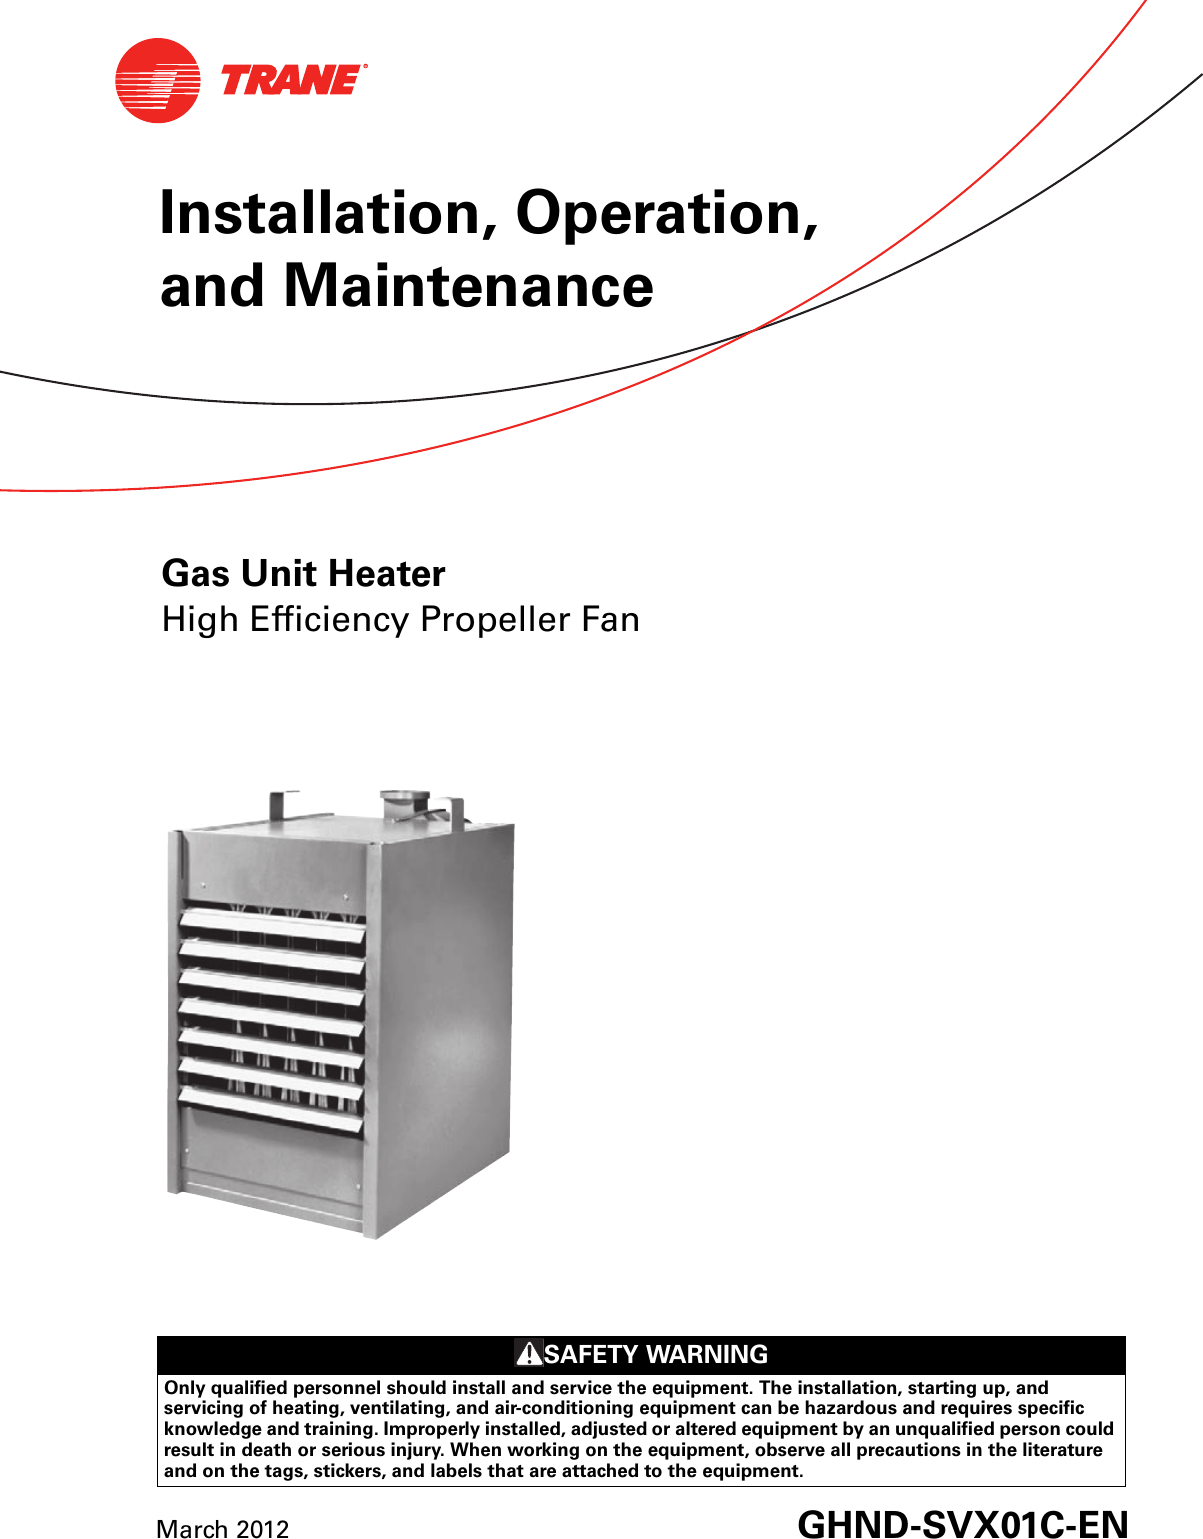 hight resolution of trane gas unit heaters installation and maintenance manual ghnd svx01c en 03 16 2012 installation operation heater high efficiency propeller fan s gh